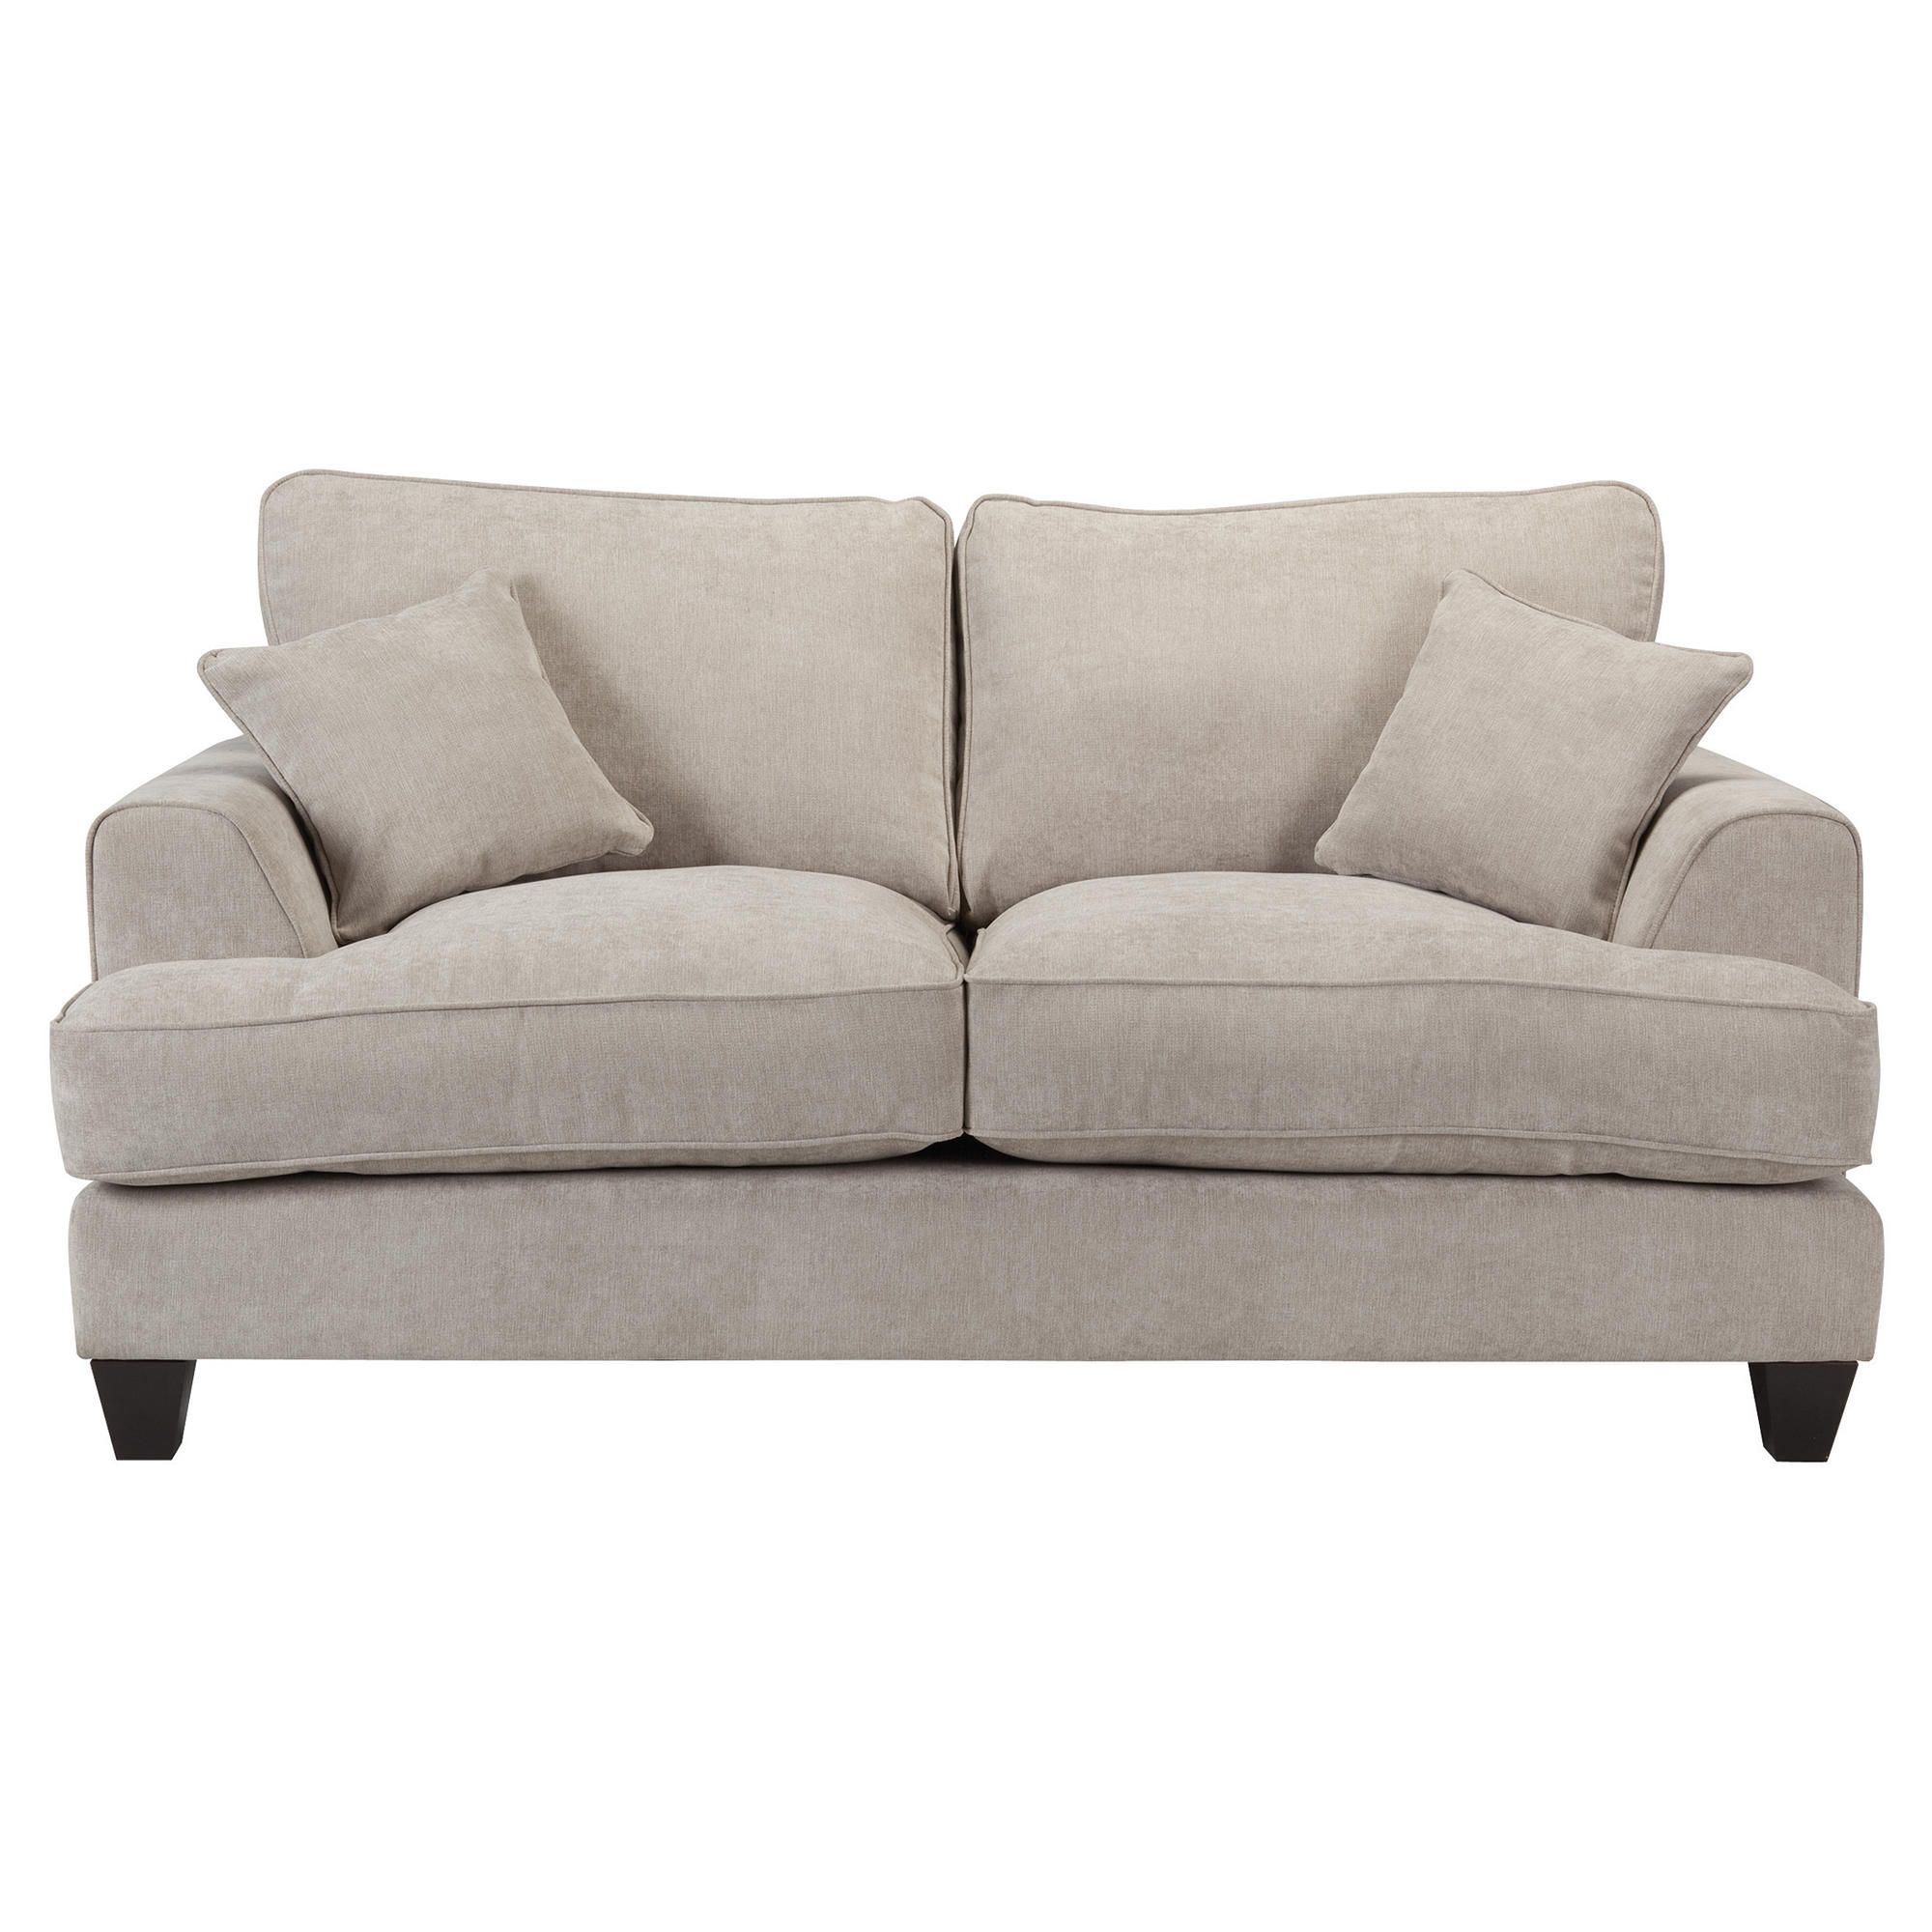 Kensington Fabric Small Sofa Light Grey at Tesco Direct